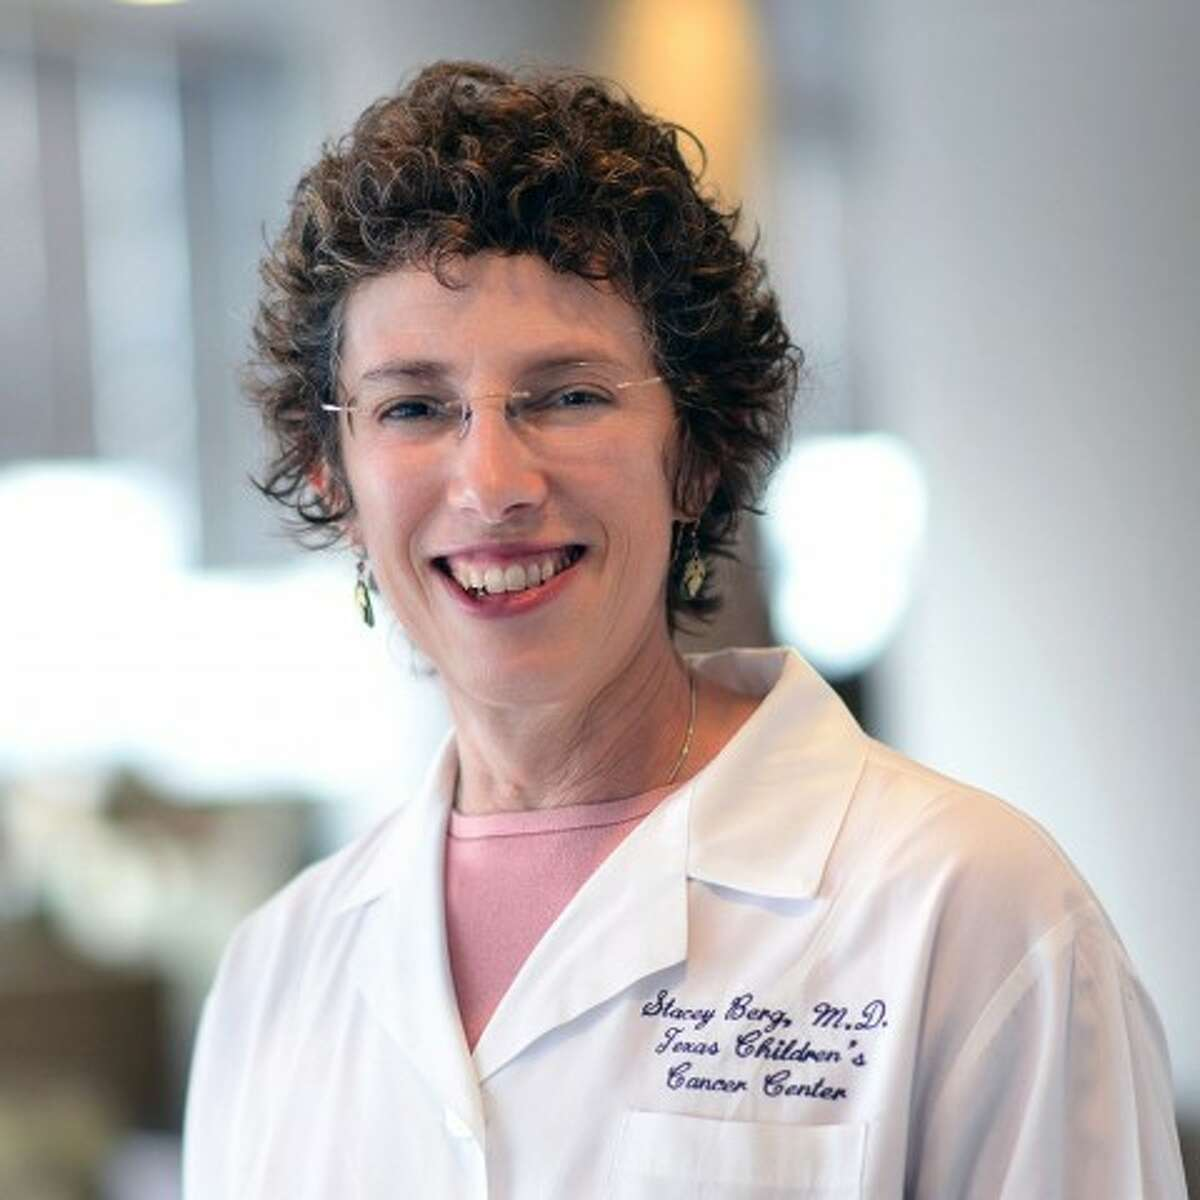 Stacey L. Berg, MD Specialty:Pediatric Hematology-Oncology Hospital:Texas Children's Hospital